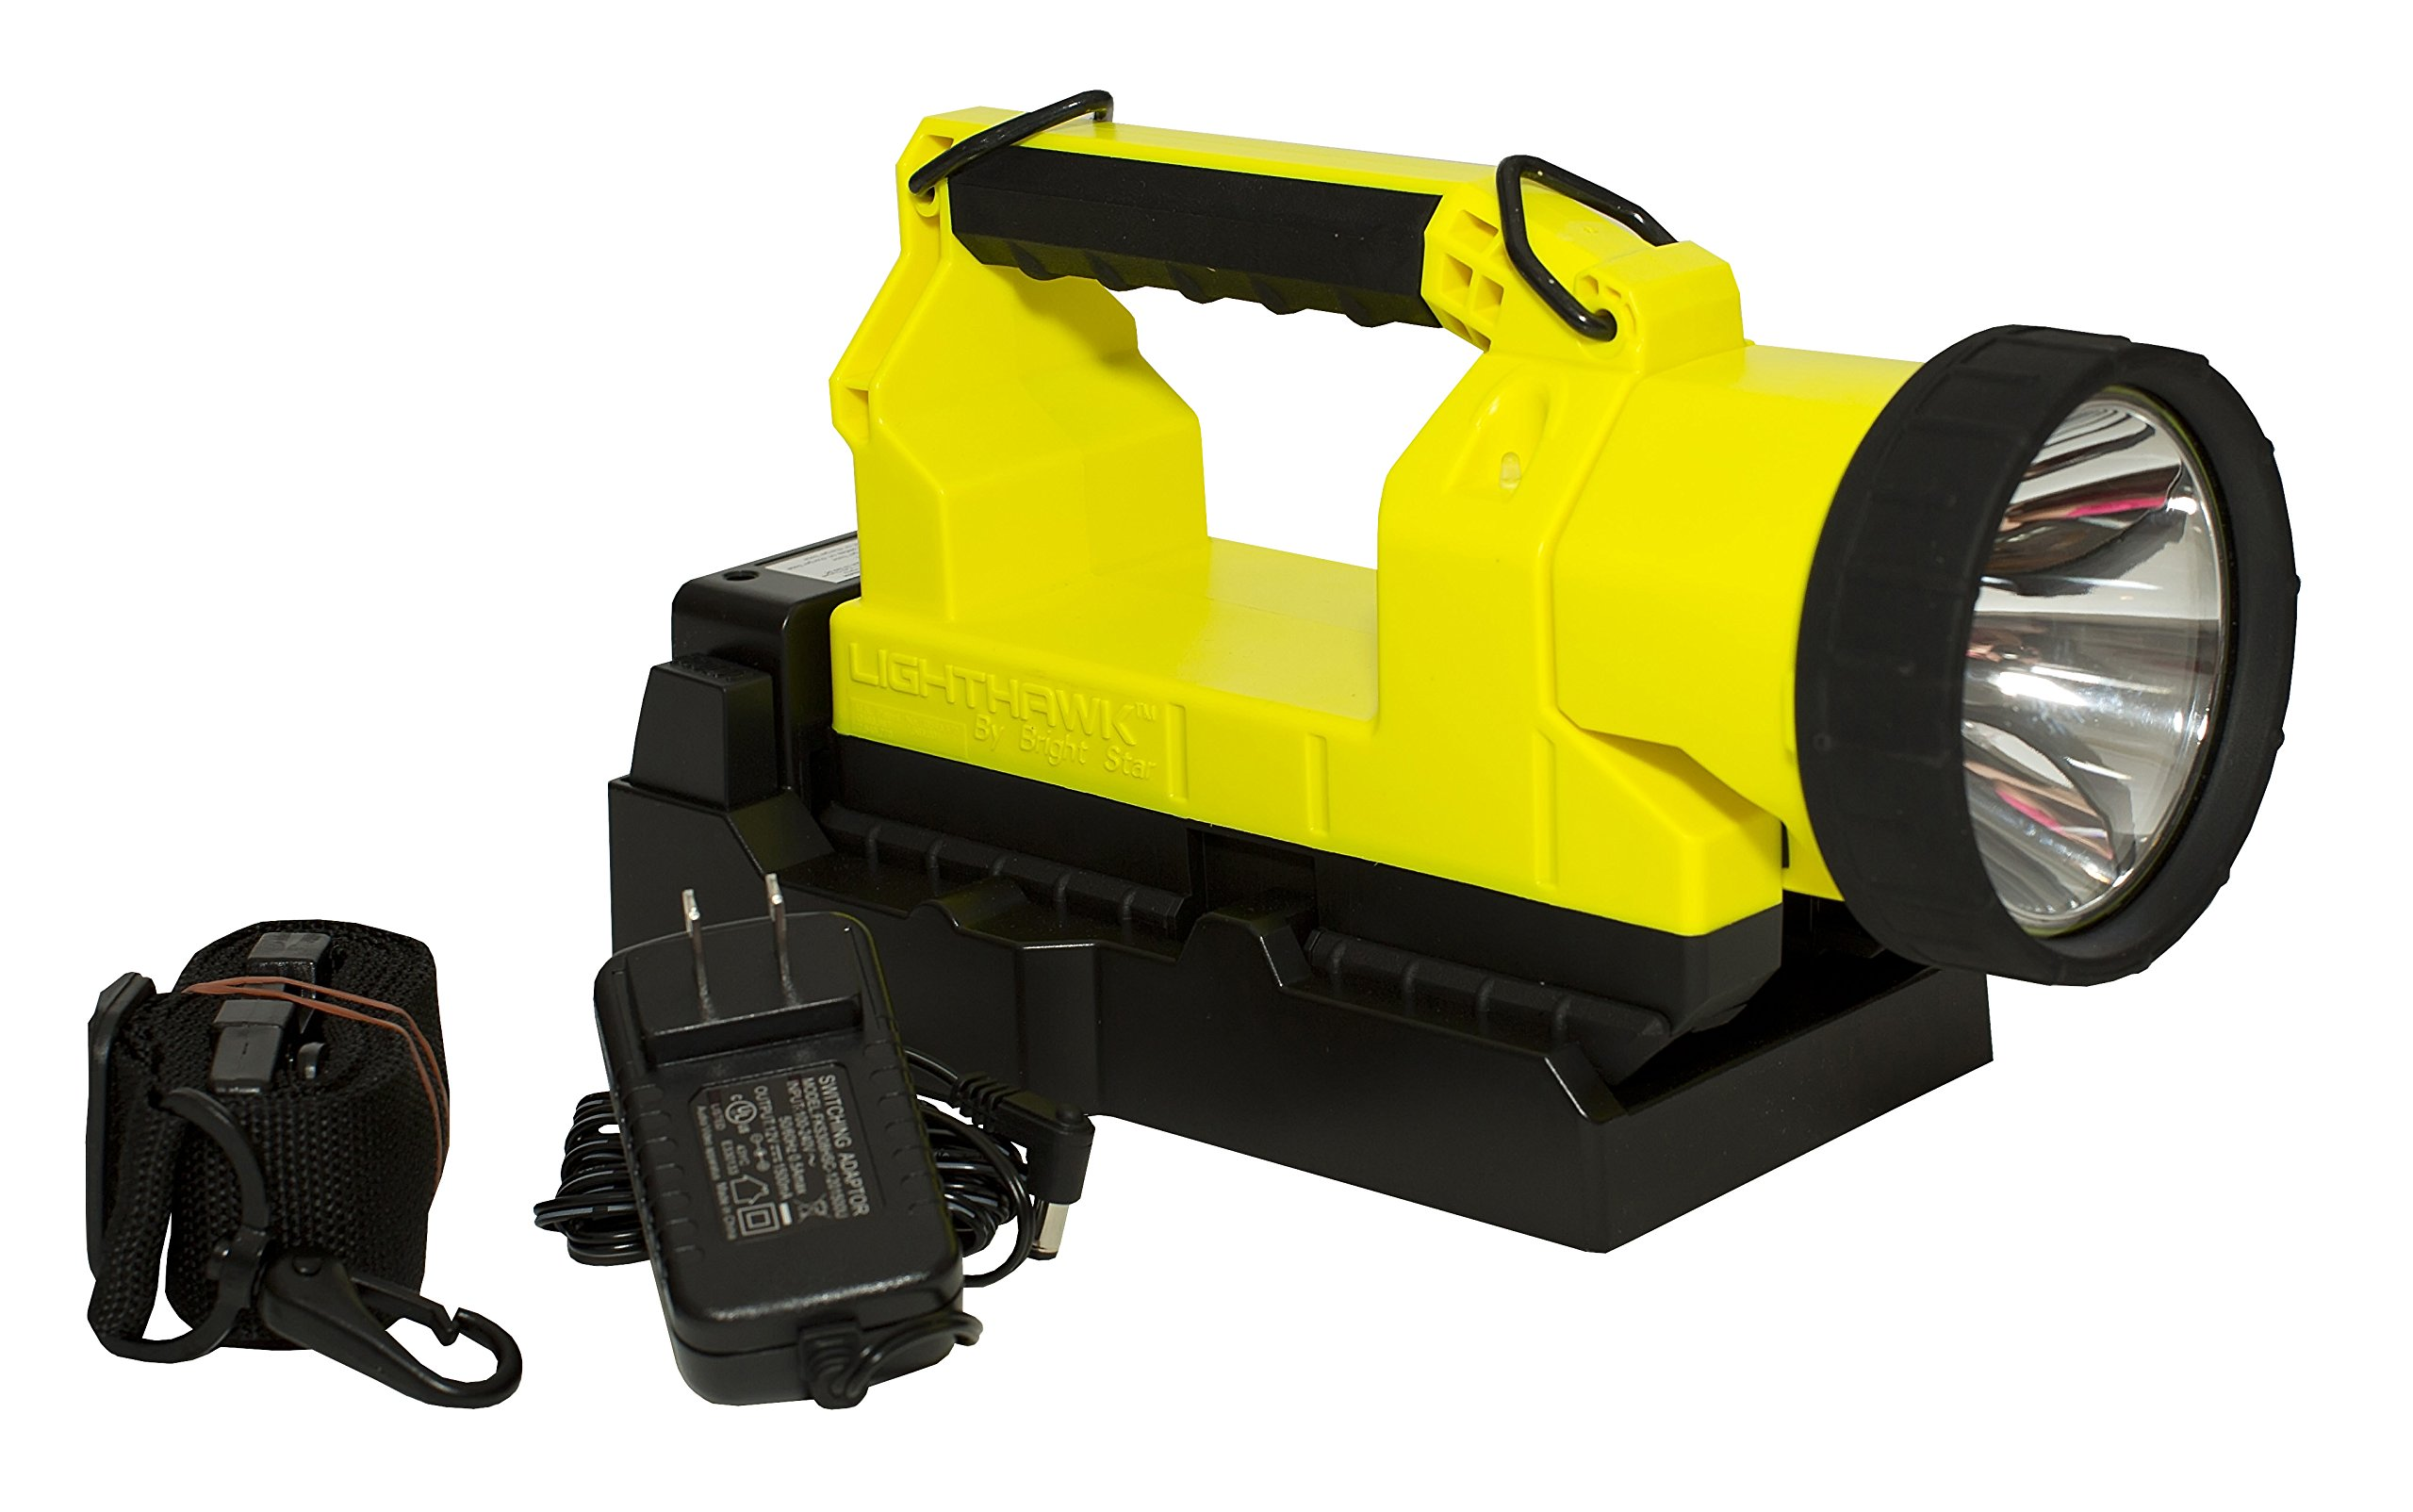 Bright Star 07612 UTIL Intrinsically Safe LED Lighthawk Gen II Lantern, Rechargeable Lithium Ion Battery, High/Low Main Light, 300 Lumens, 7/14 Hours Run Time, Yellow, comes with 120V and DC Chargers.